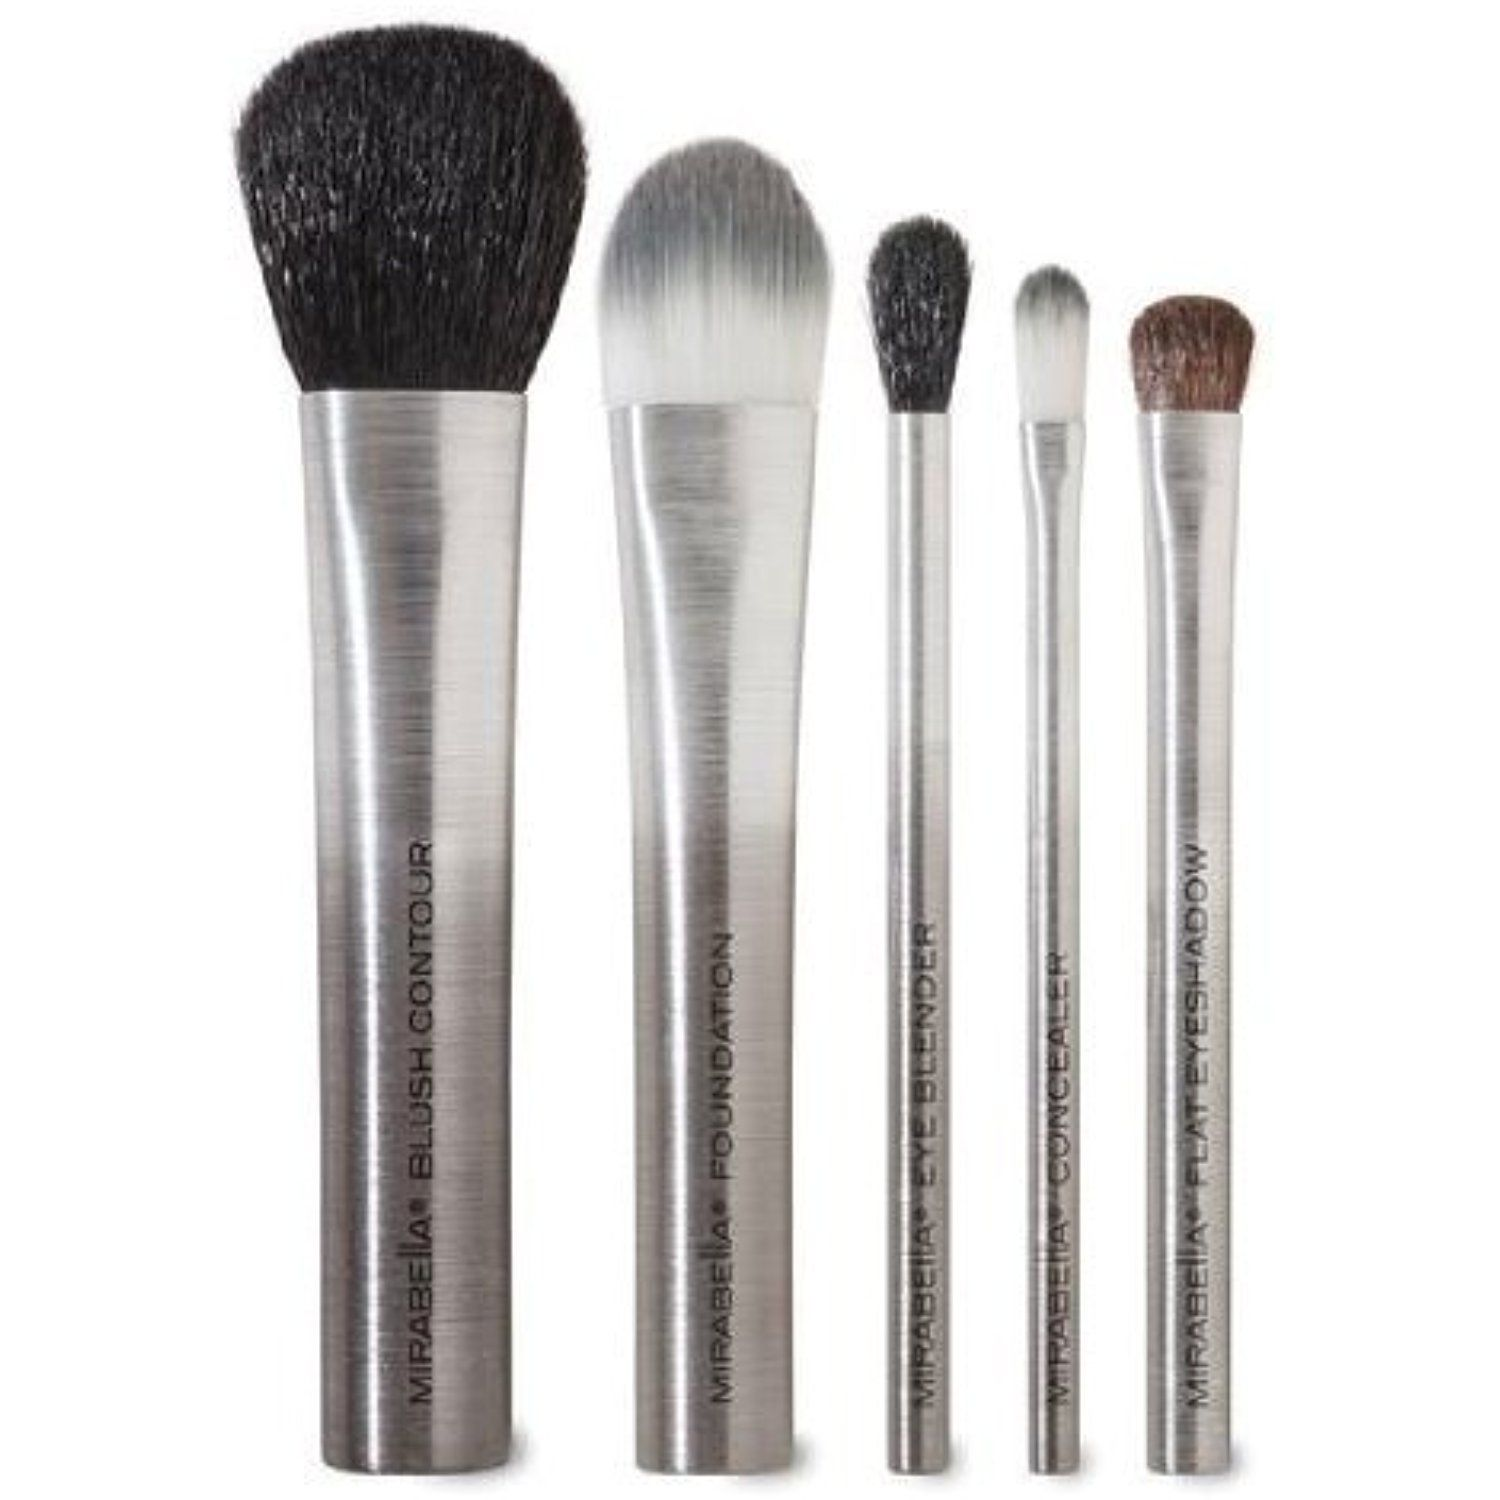 Mirabella Travel Makeup Brush Set 5pc >>> You can get more